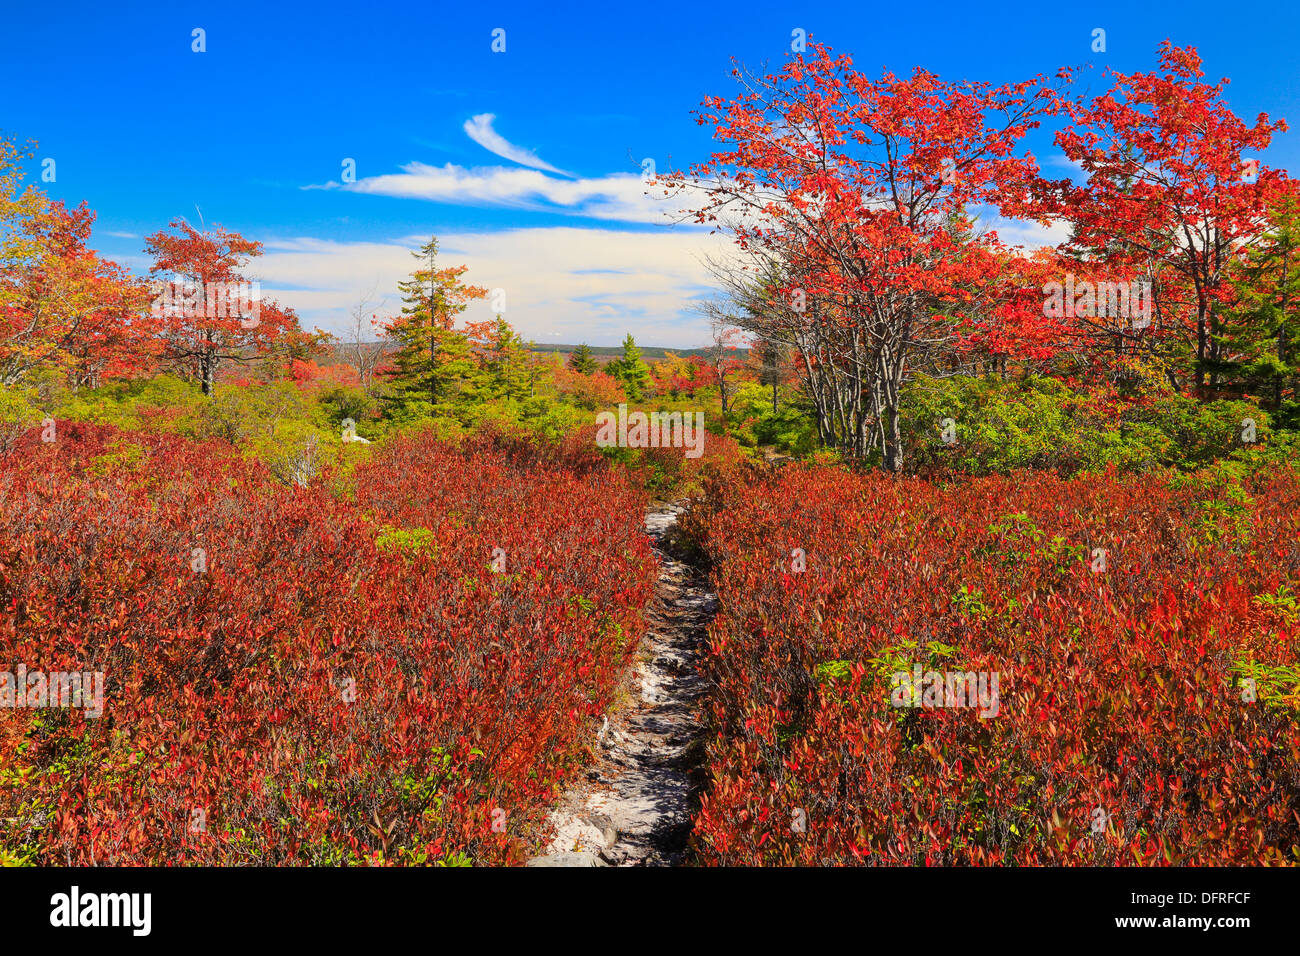 Harman Knob Trail, Dolly Sods Wilderness, Hopeville, West Virginia, USA - Stock Image